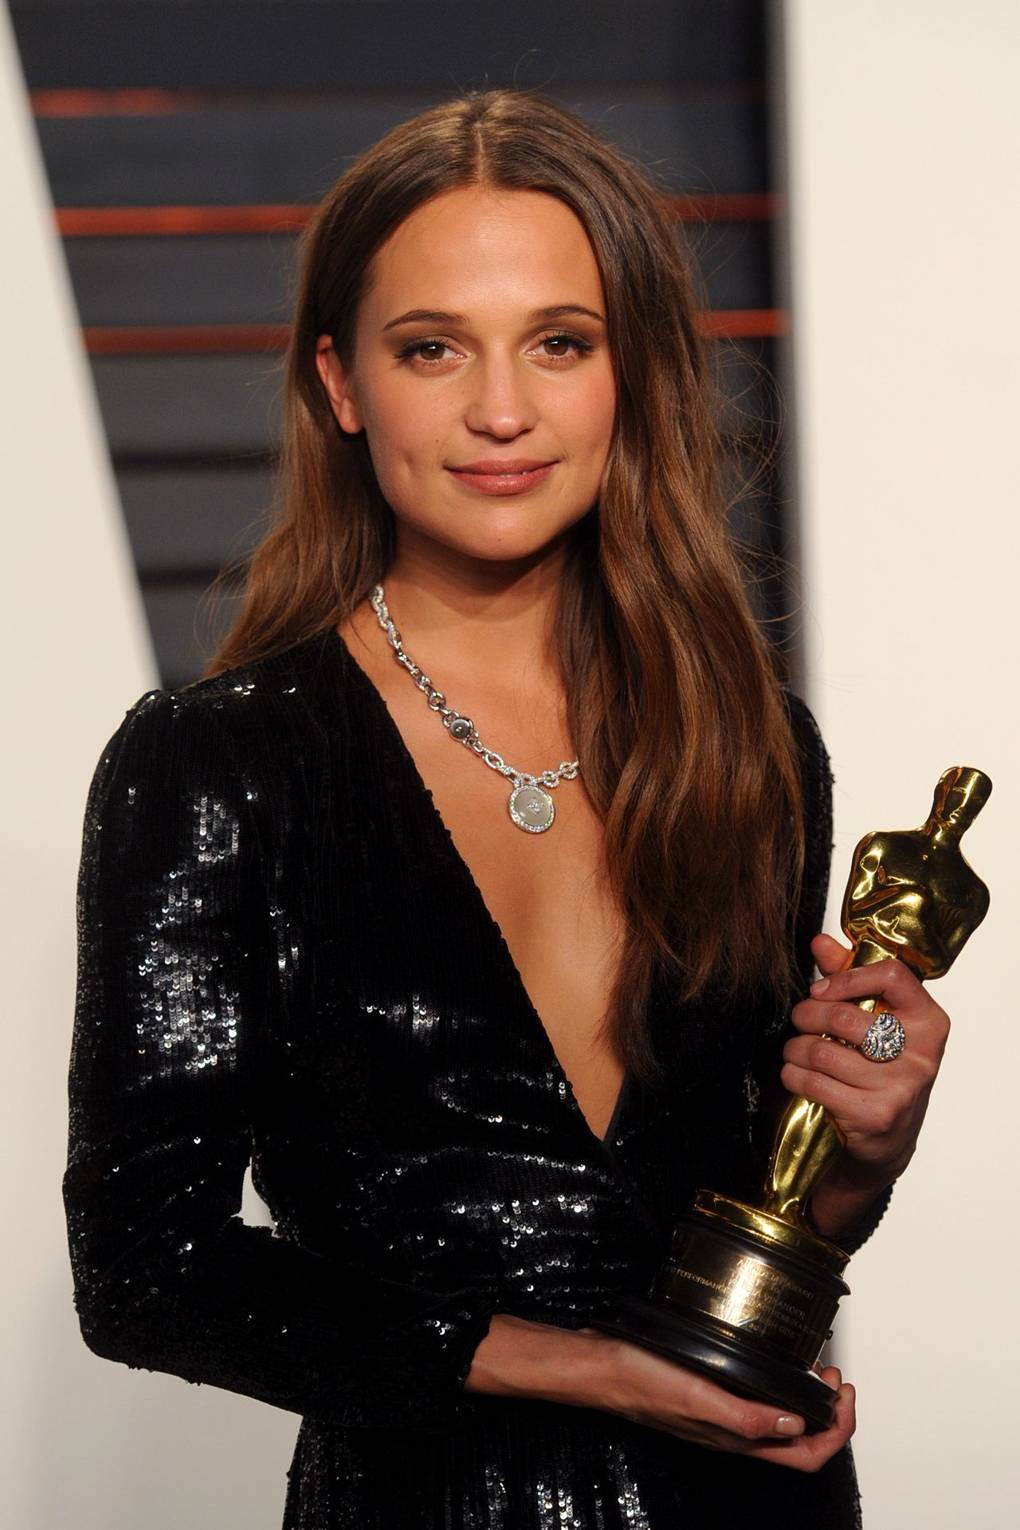 Photos Alicia Vikander naked (29 photos), Topless, Paparazzi, Boobs, braless 2017